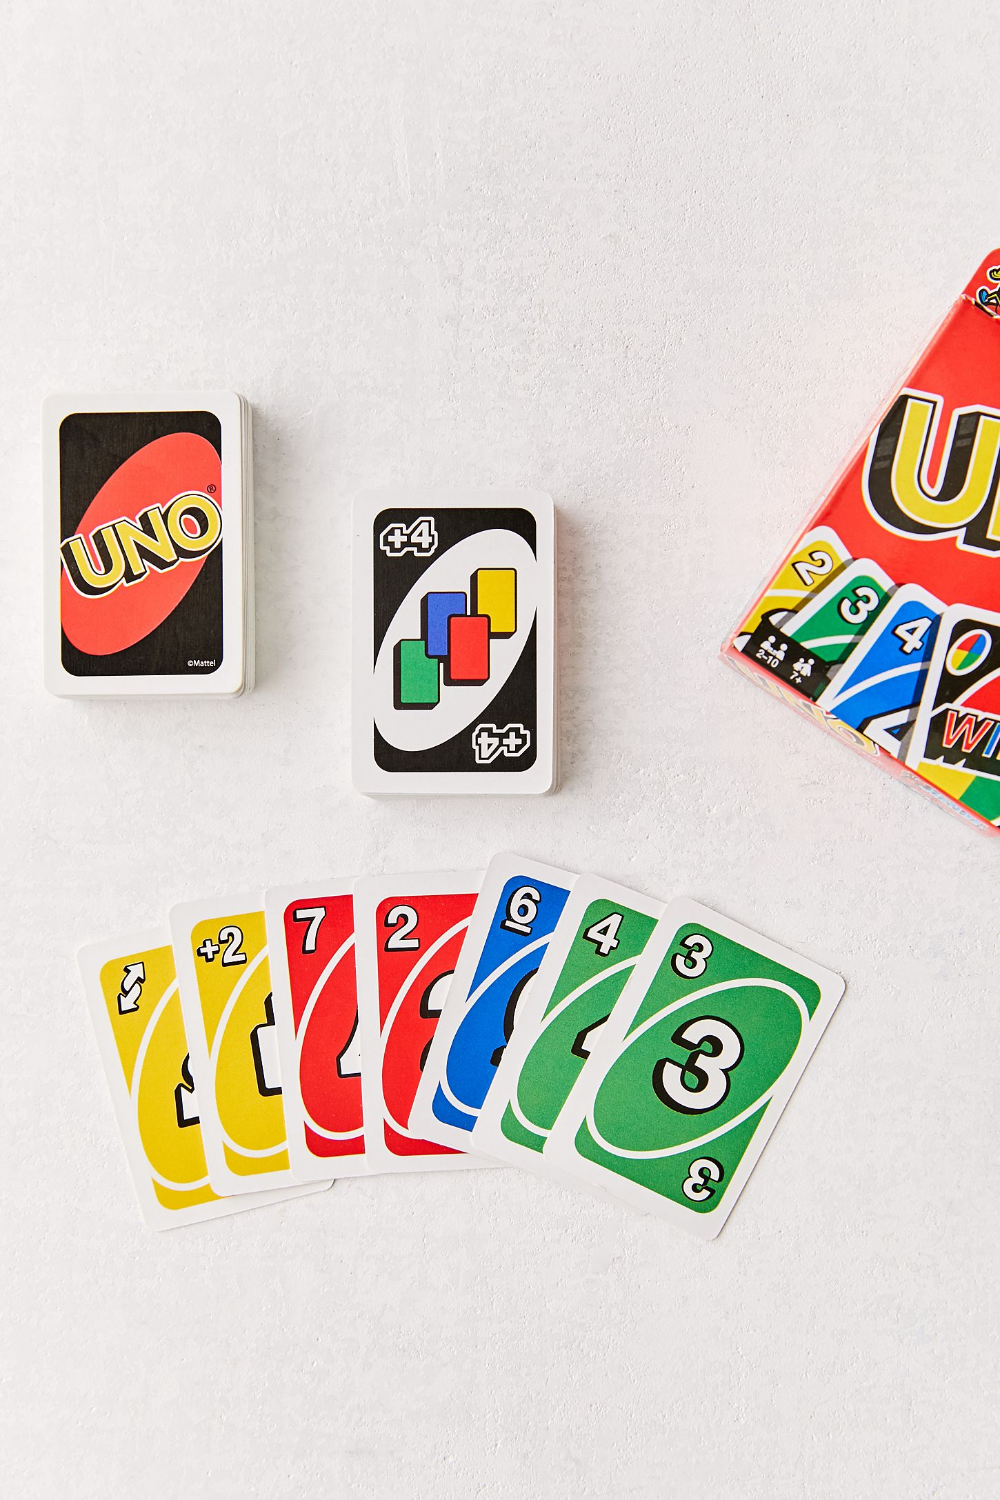 World's Smallest Uno Card Game Uno card game, Card games